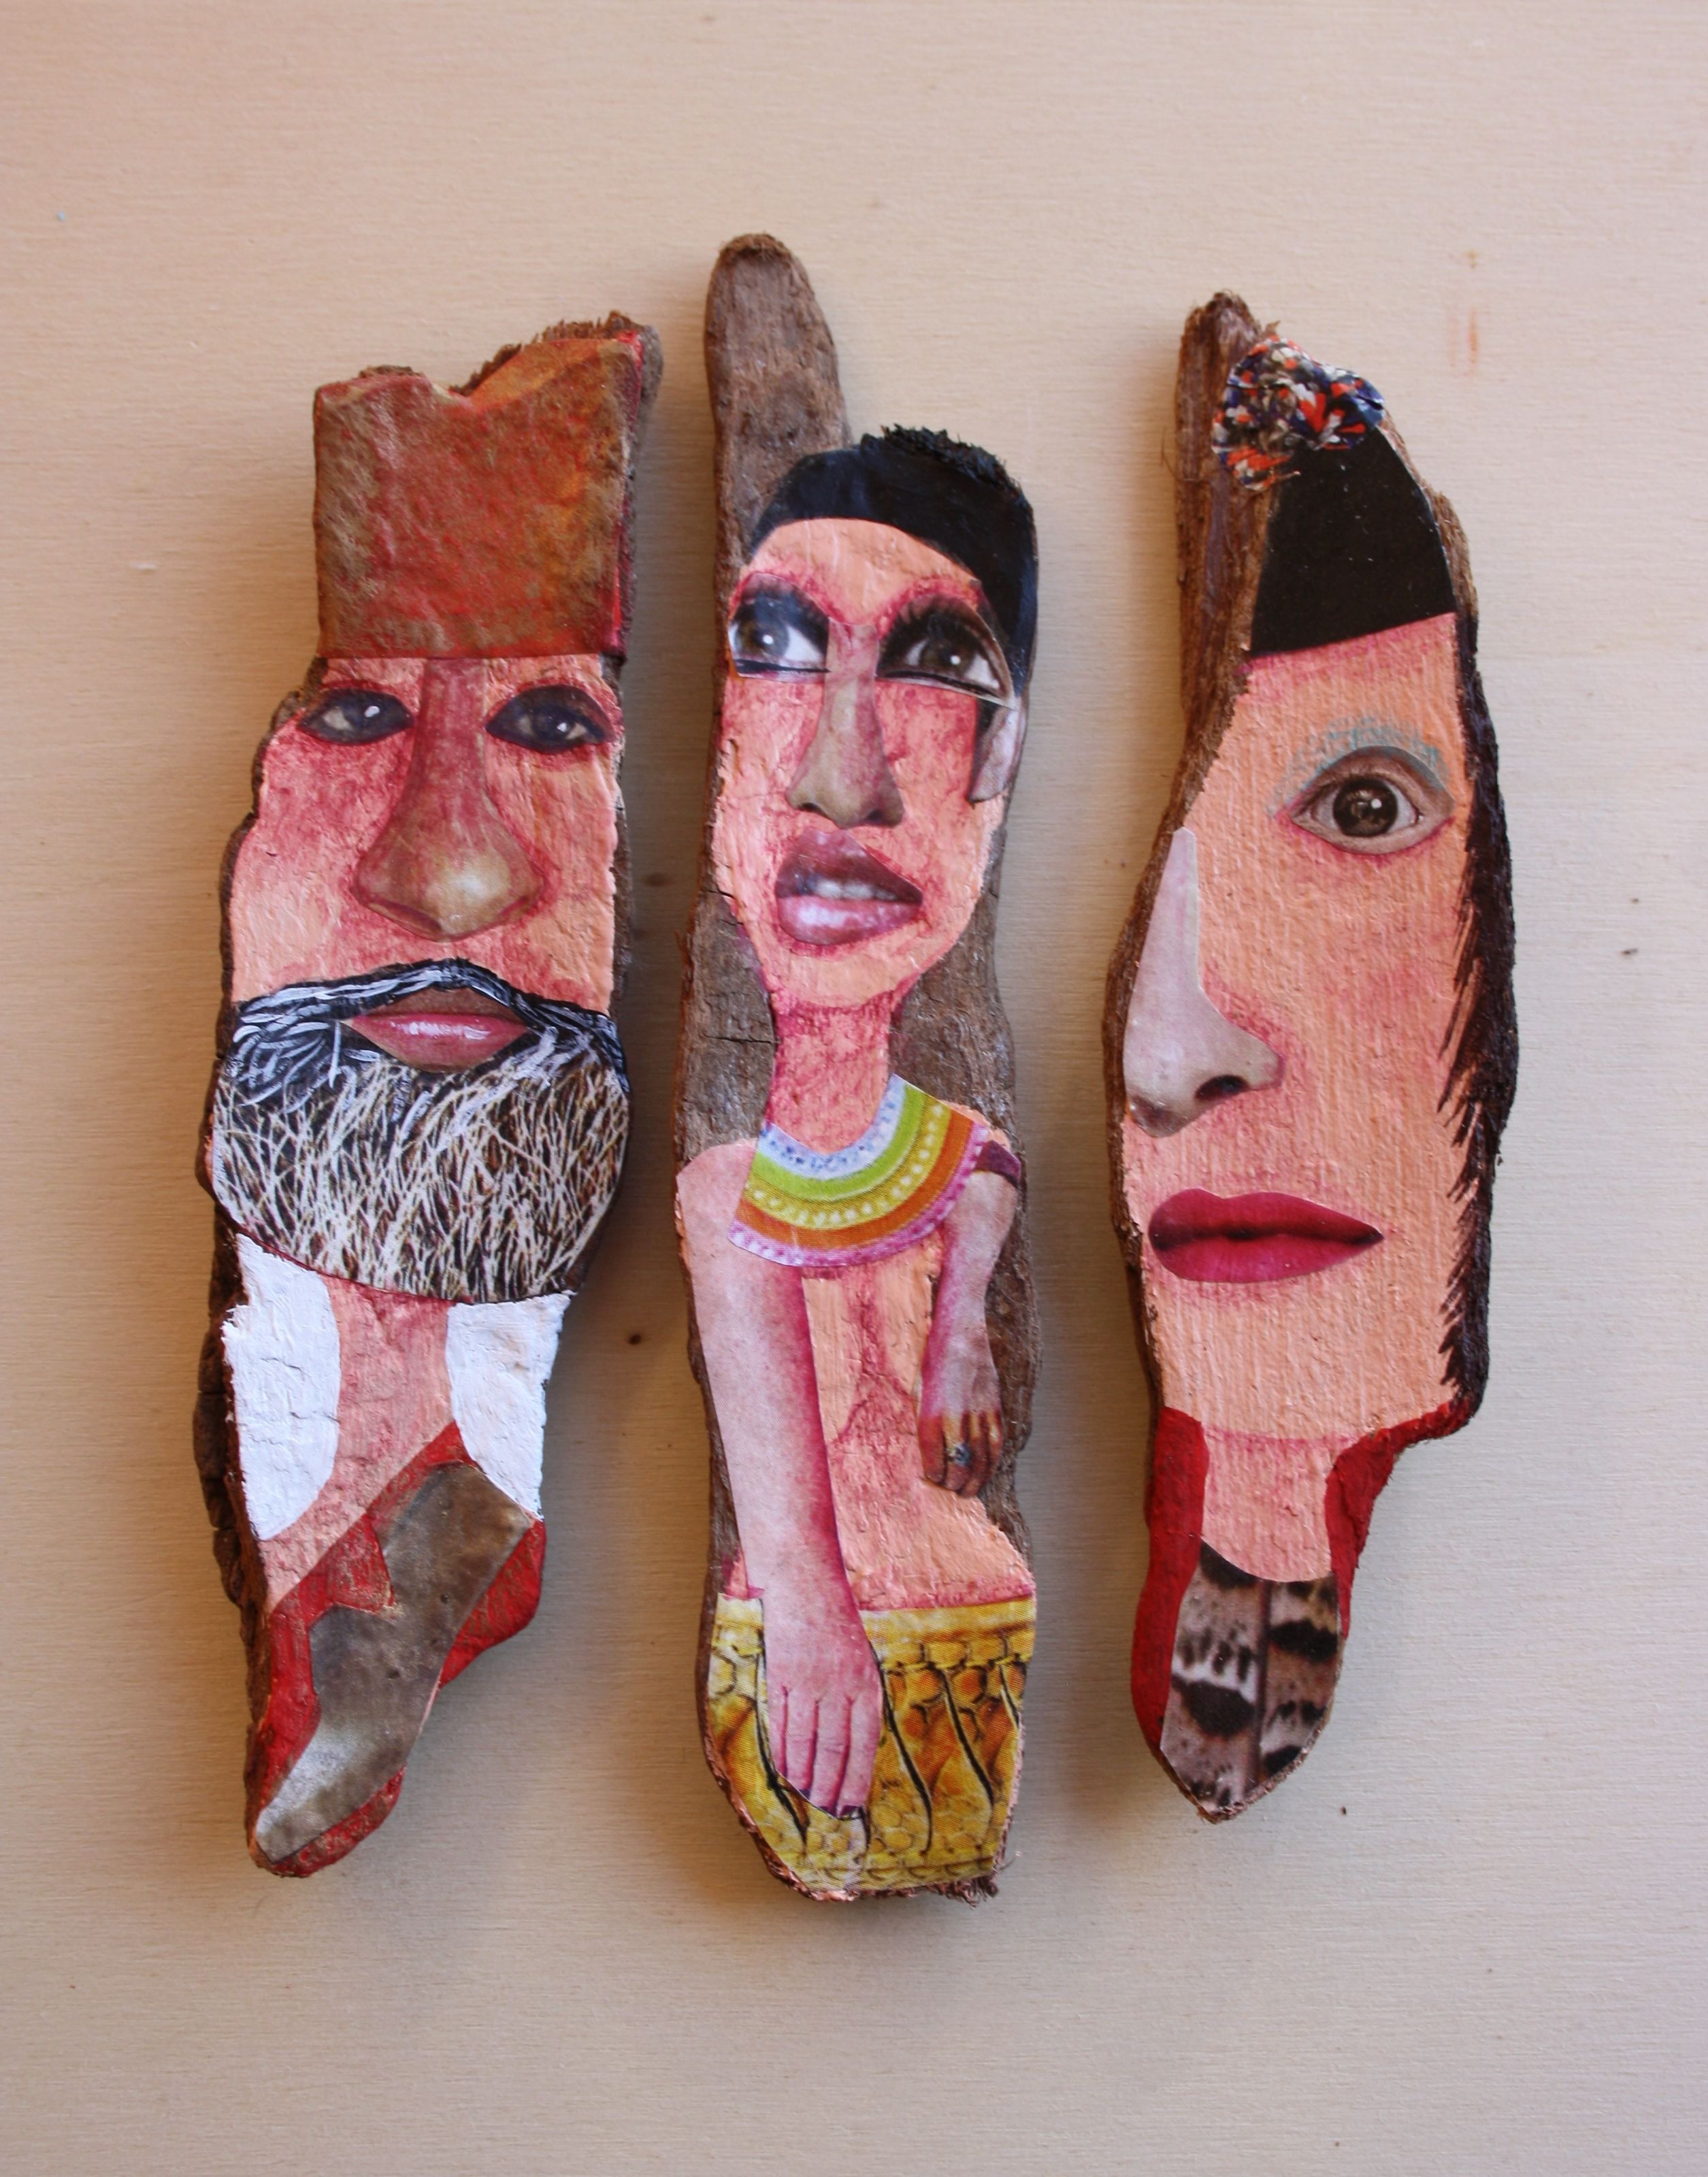 'People'. Acrylic and mixed media on cork oak driftwood from Northern Spanish coast. By Ginny Rose, 2015